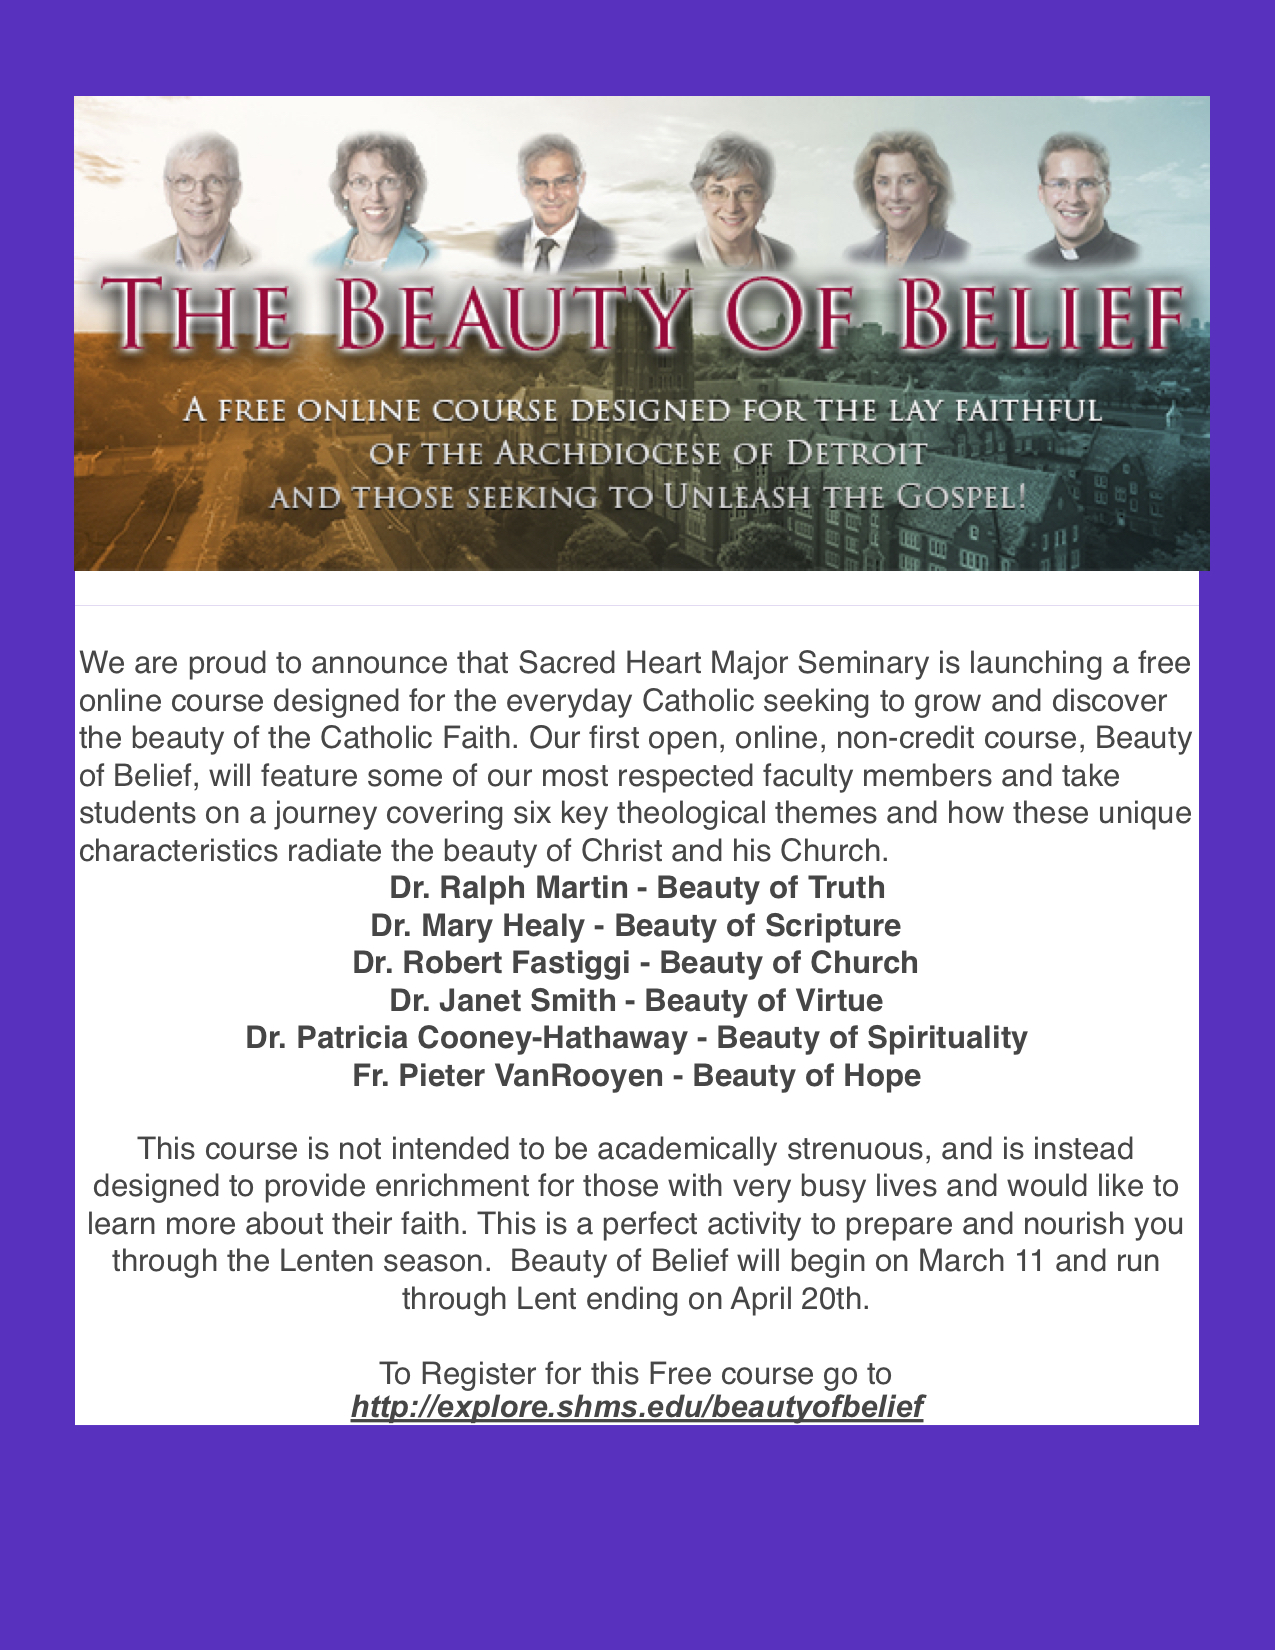 The Beauty Of Belief Program